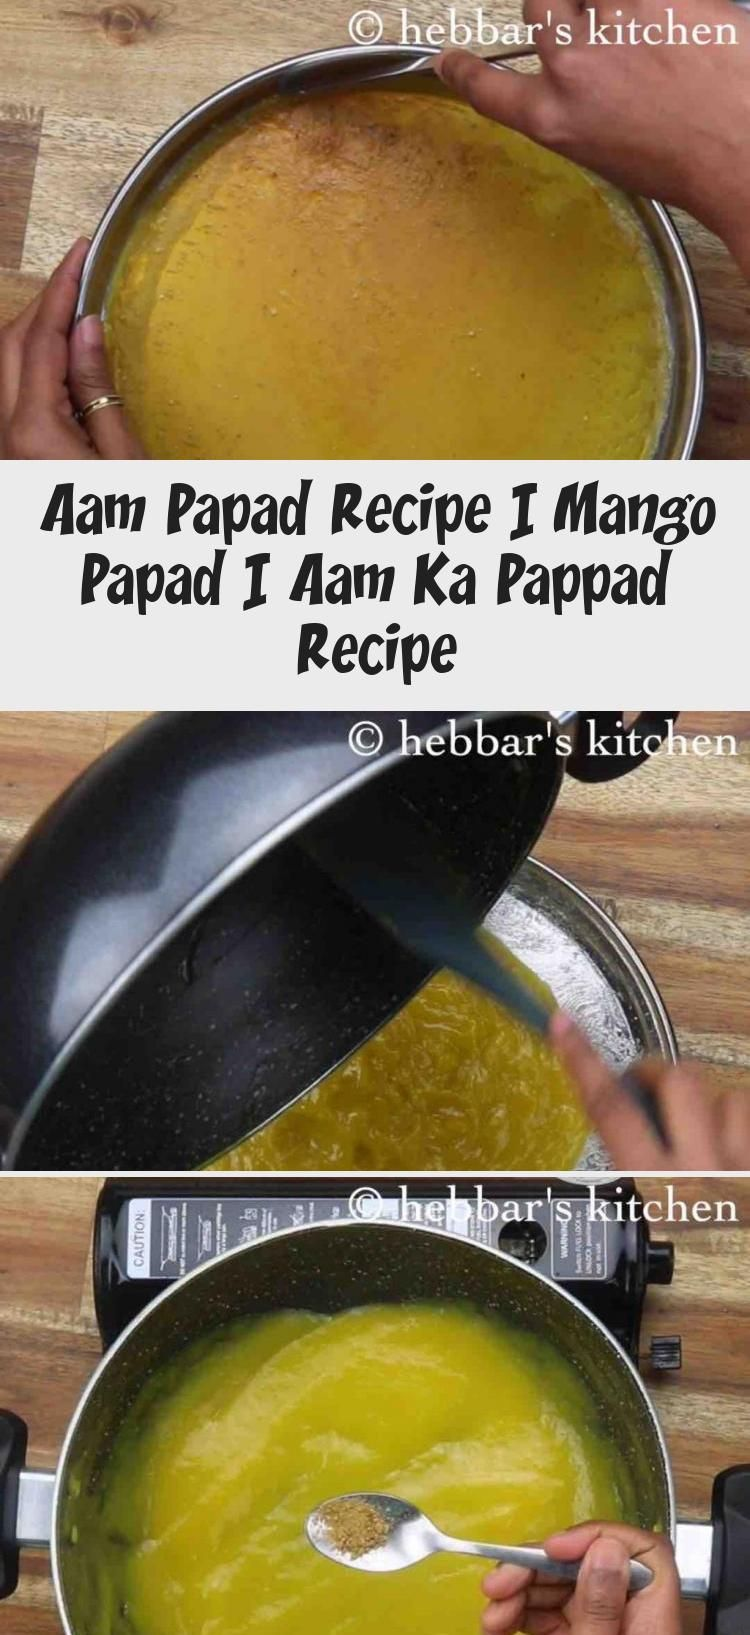 Photo of aam papad recipe | mango papad | Your pappad recipe with detailed photo and vi …